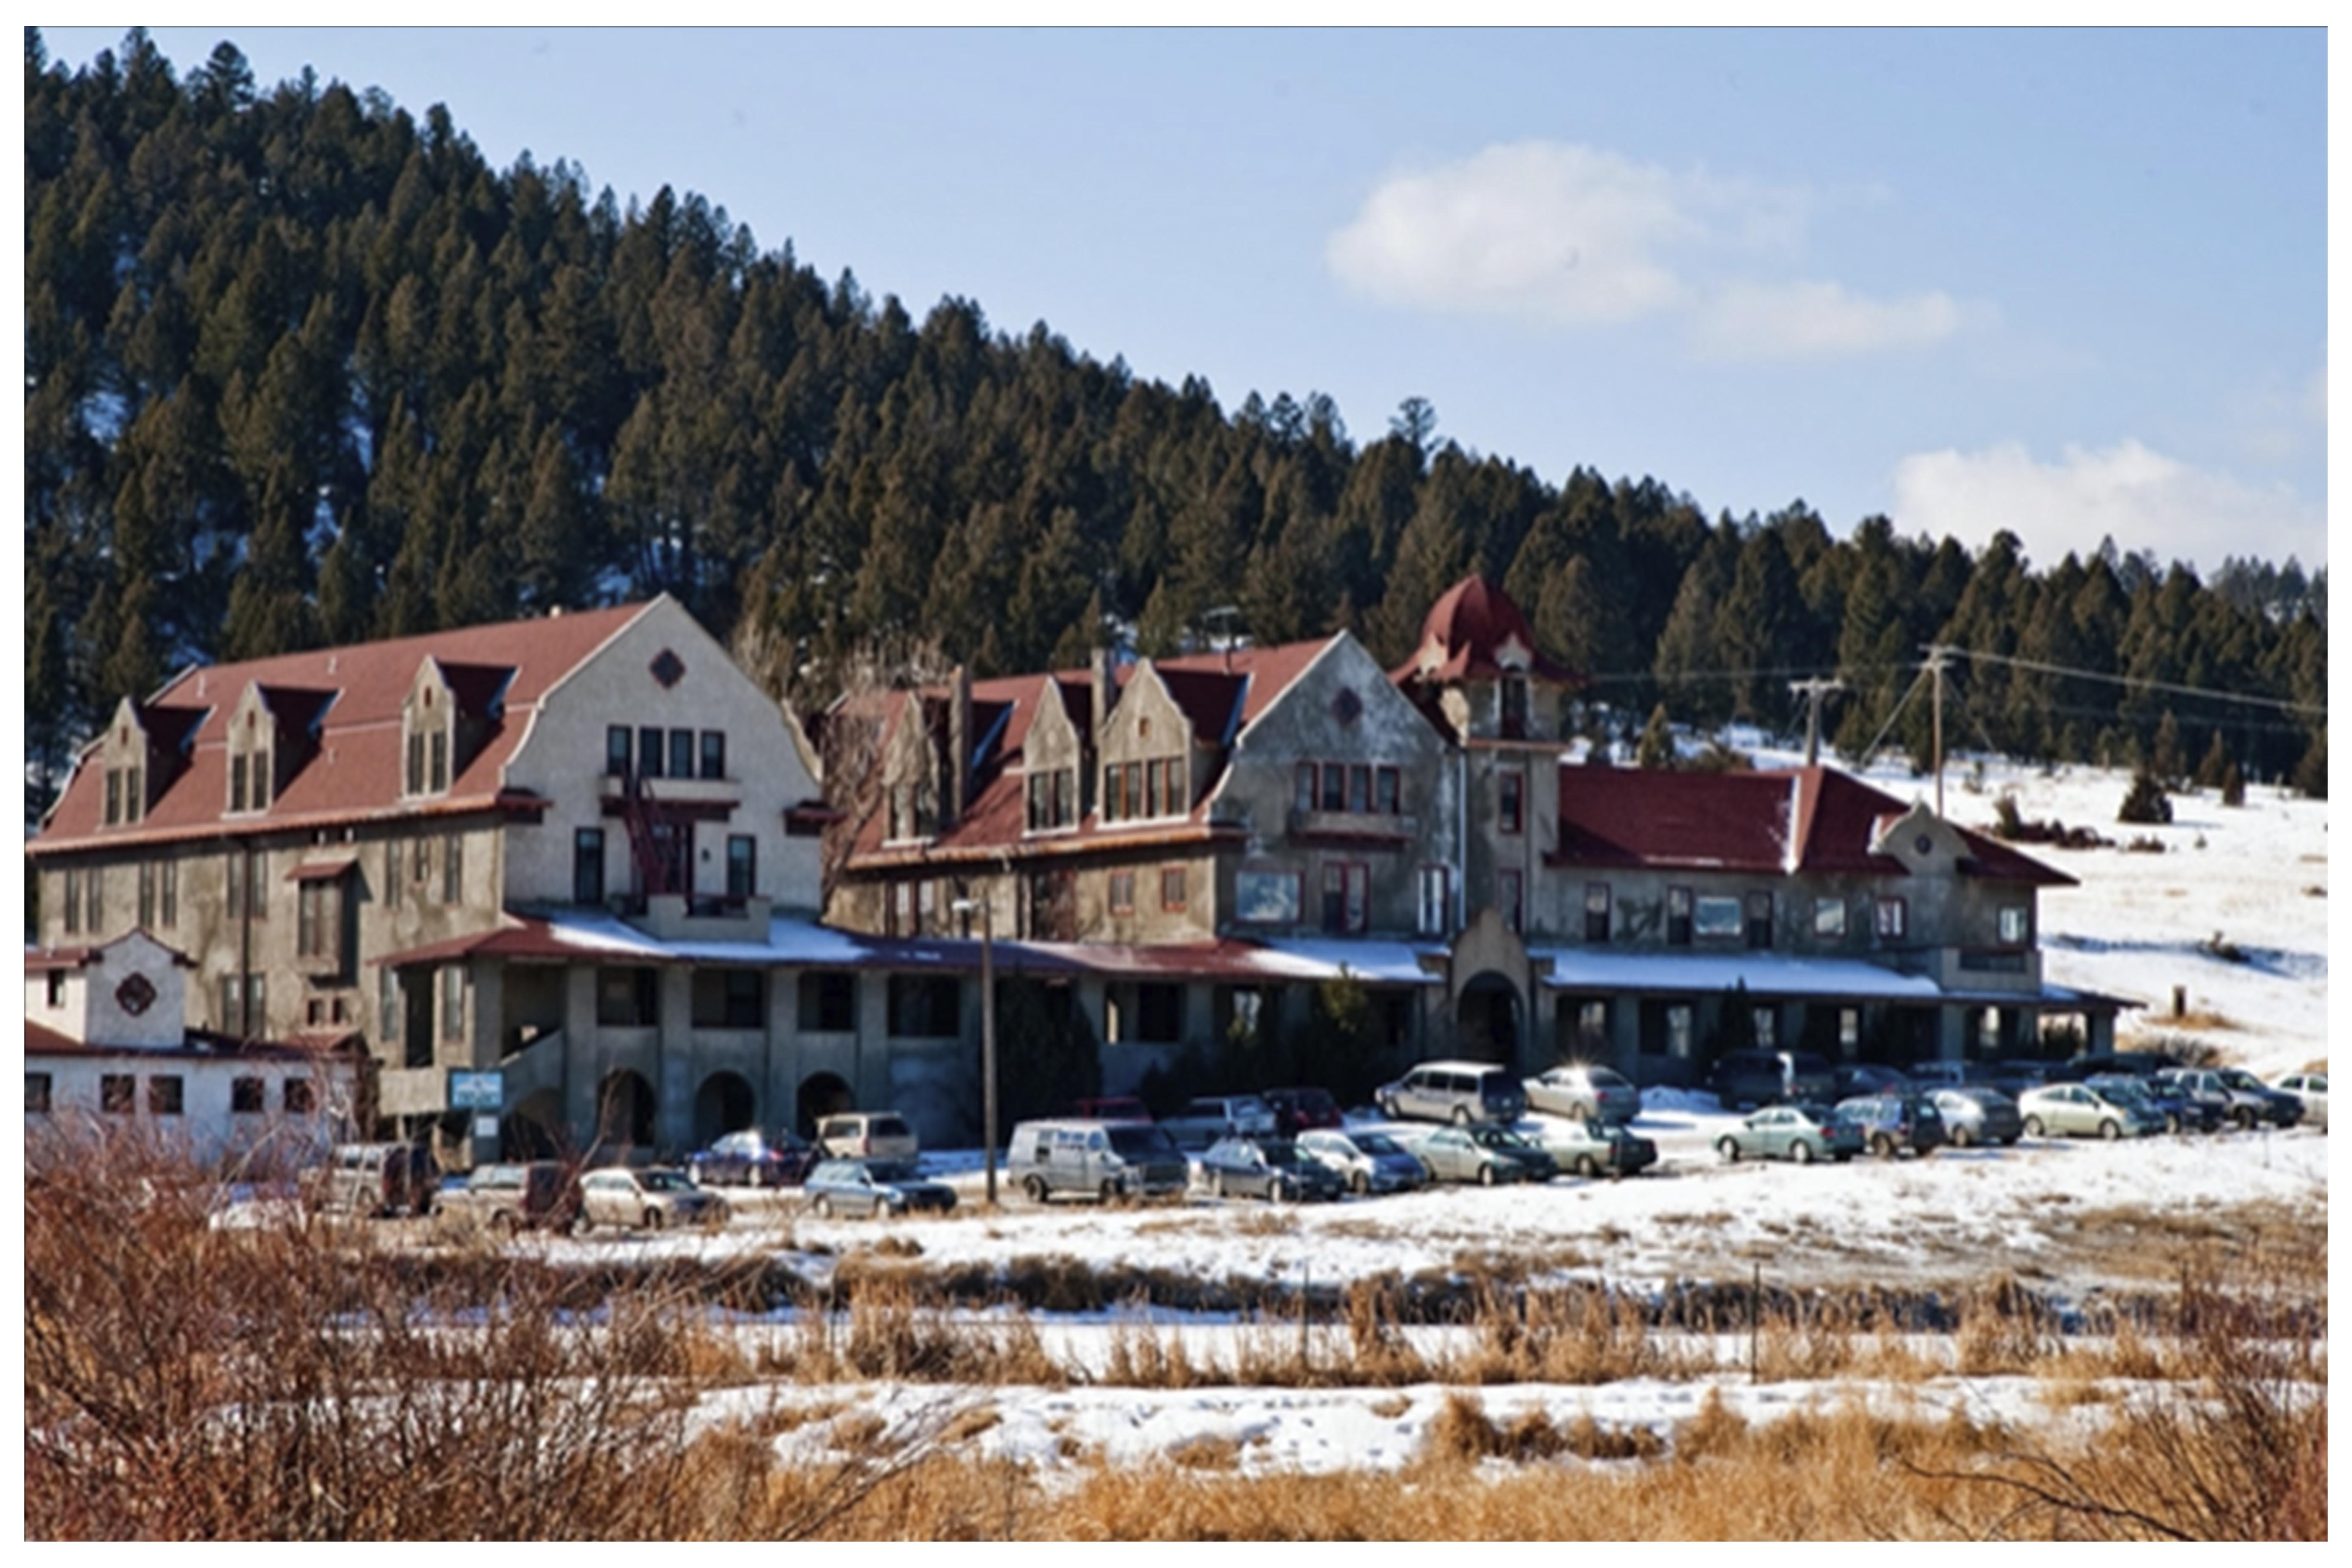 CVB_Hotsprings-2020-15_c